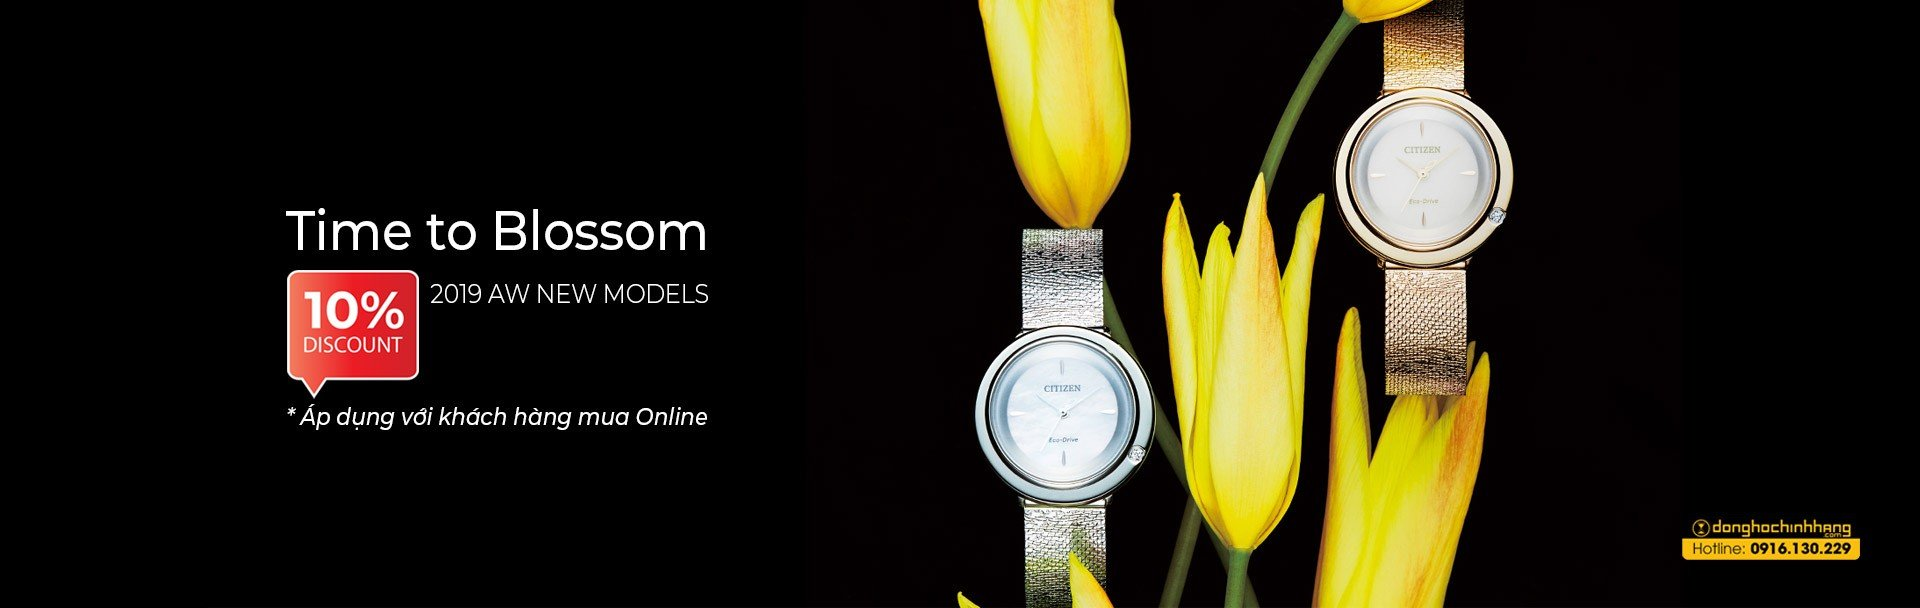 Citizen Time To Blossom